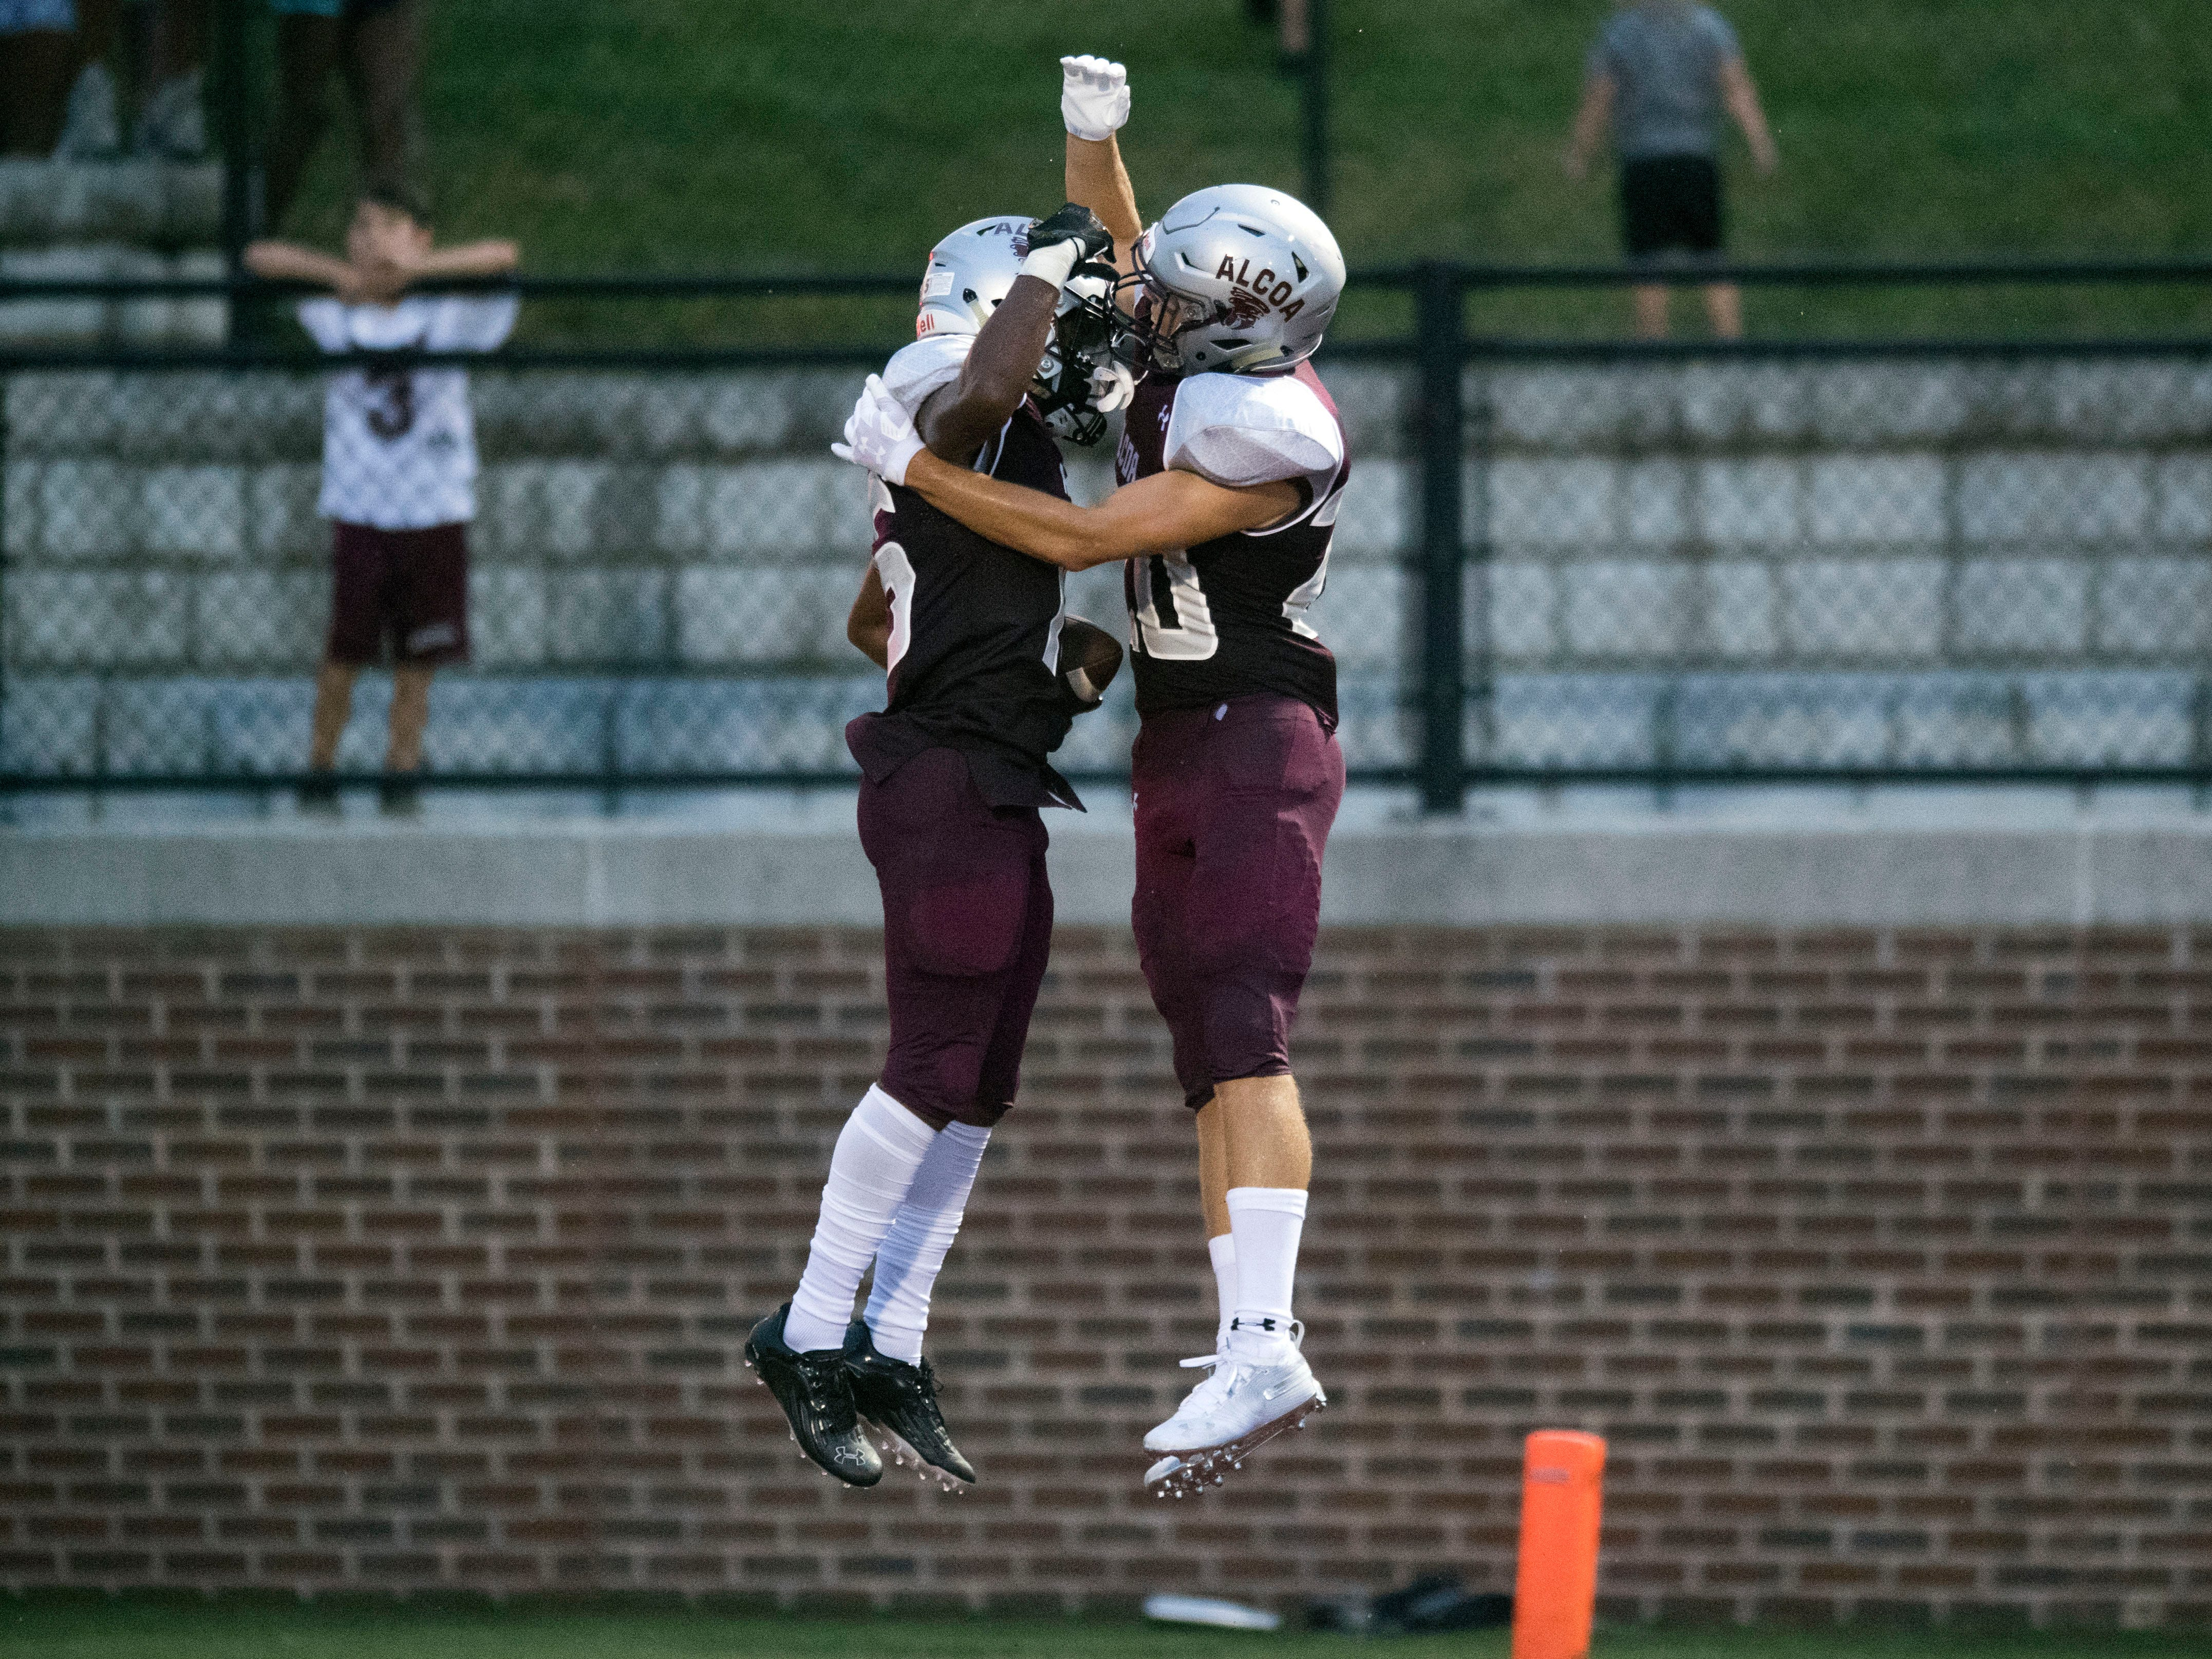 Alcoa's Ahmaudd Sankey (15) and Tyler Boyd (20) celebrate after Sankey ran the ball for a touchdown in the football game against Grace Christian Academy on Thursday, August 16, 2018.